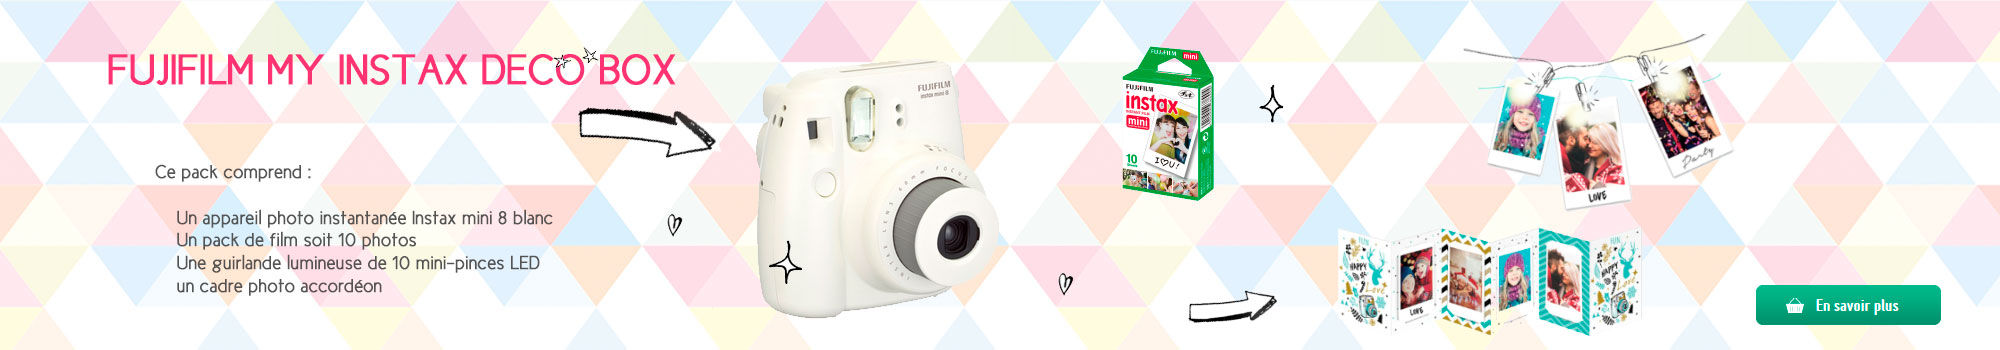 Fujifilm My Instax Deco Box